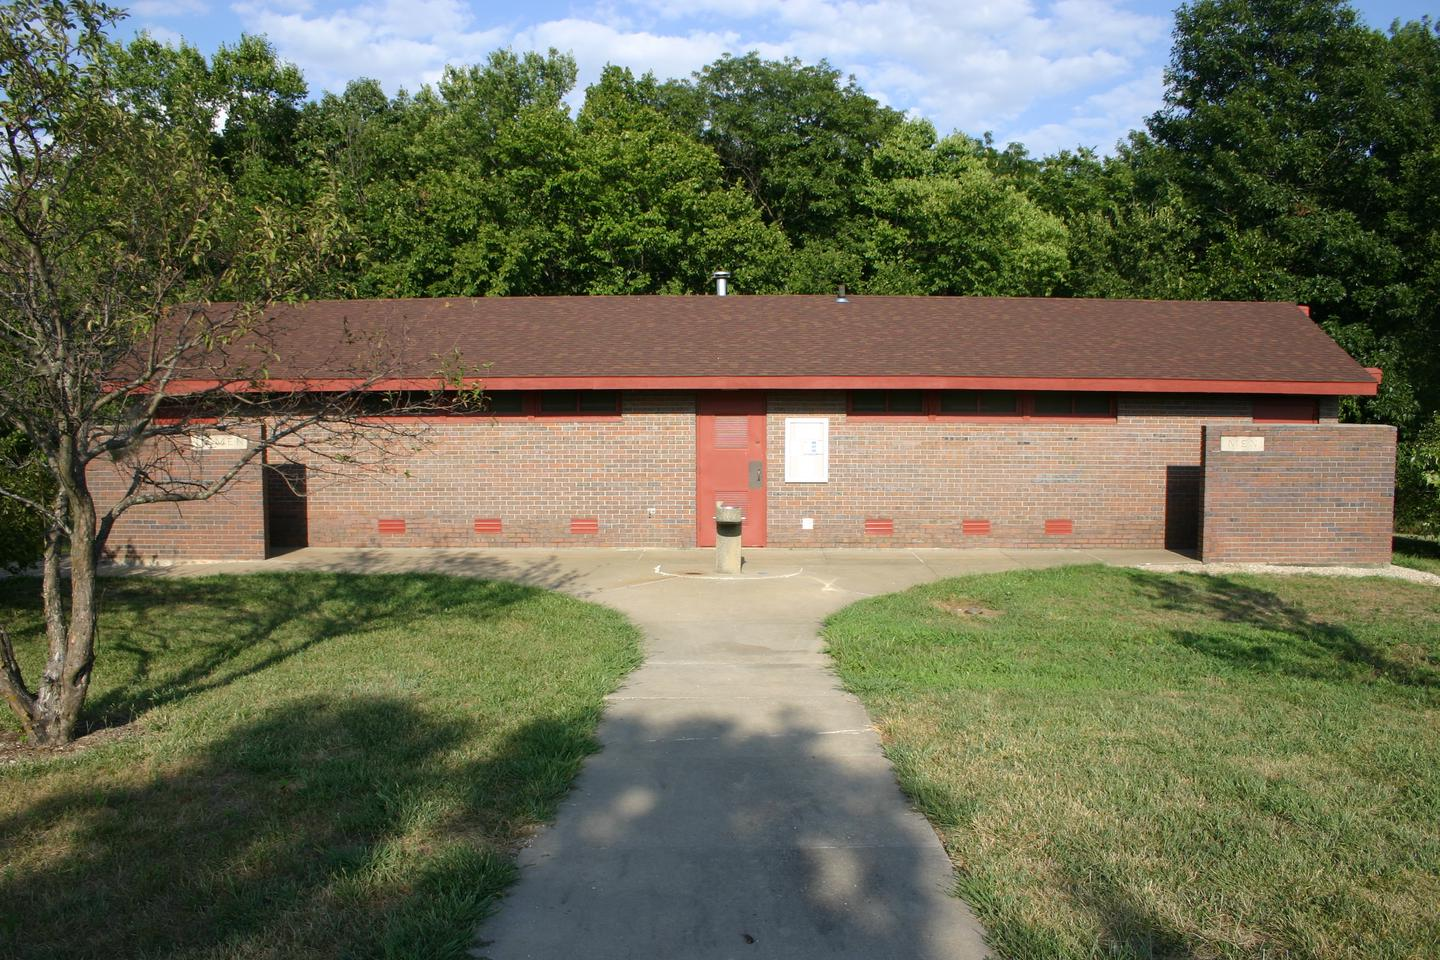 Bloomington West Shower/RestroomThe Bloomington West group camp features a large restroom and shower facility